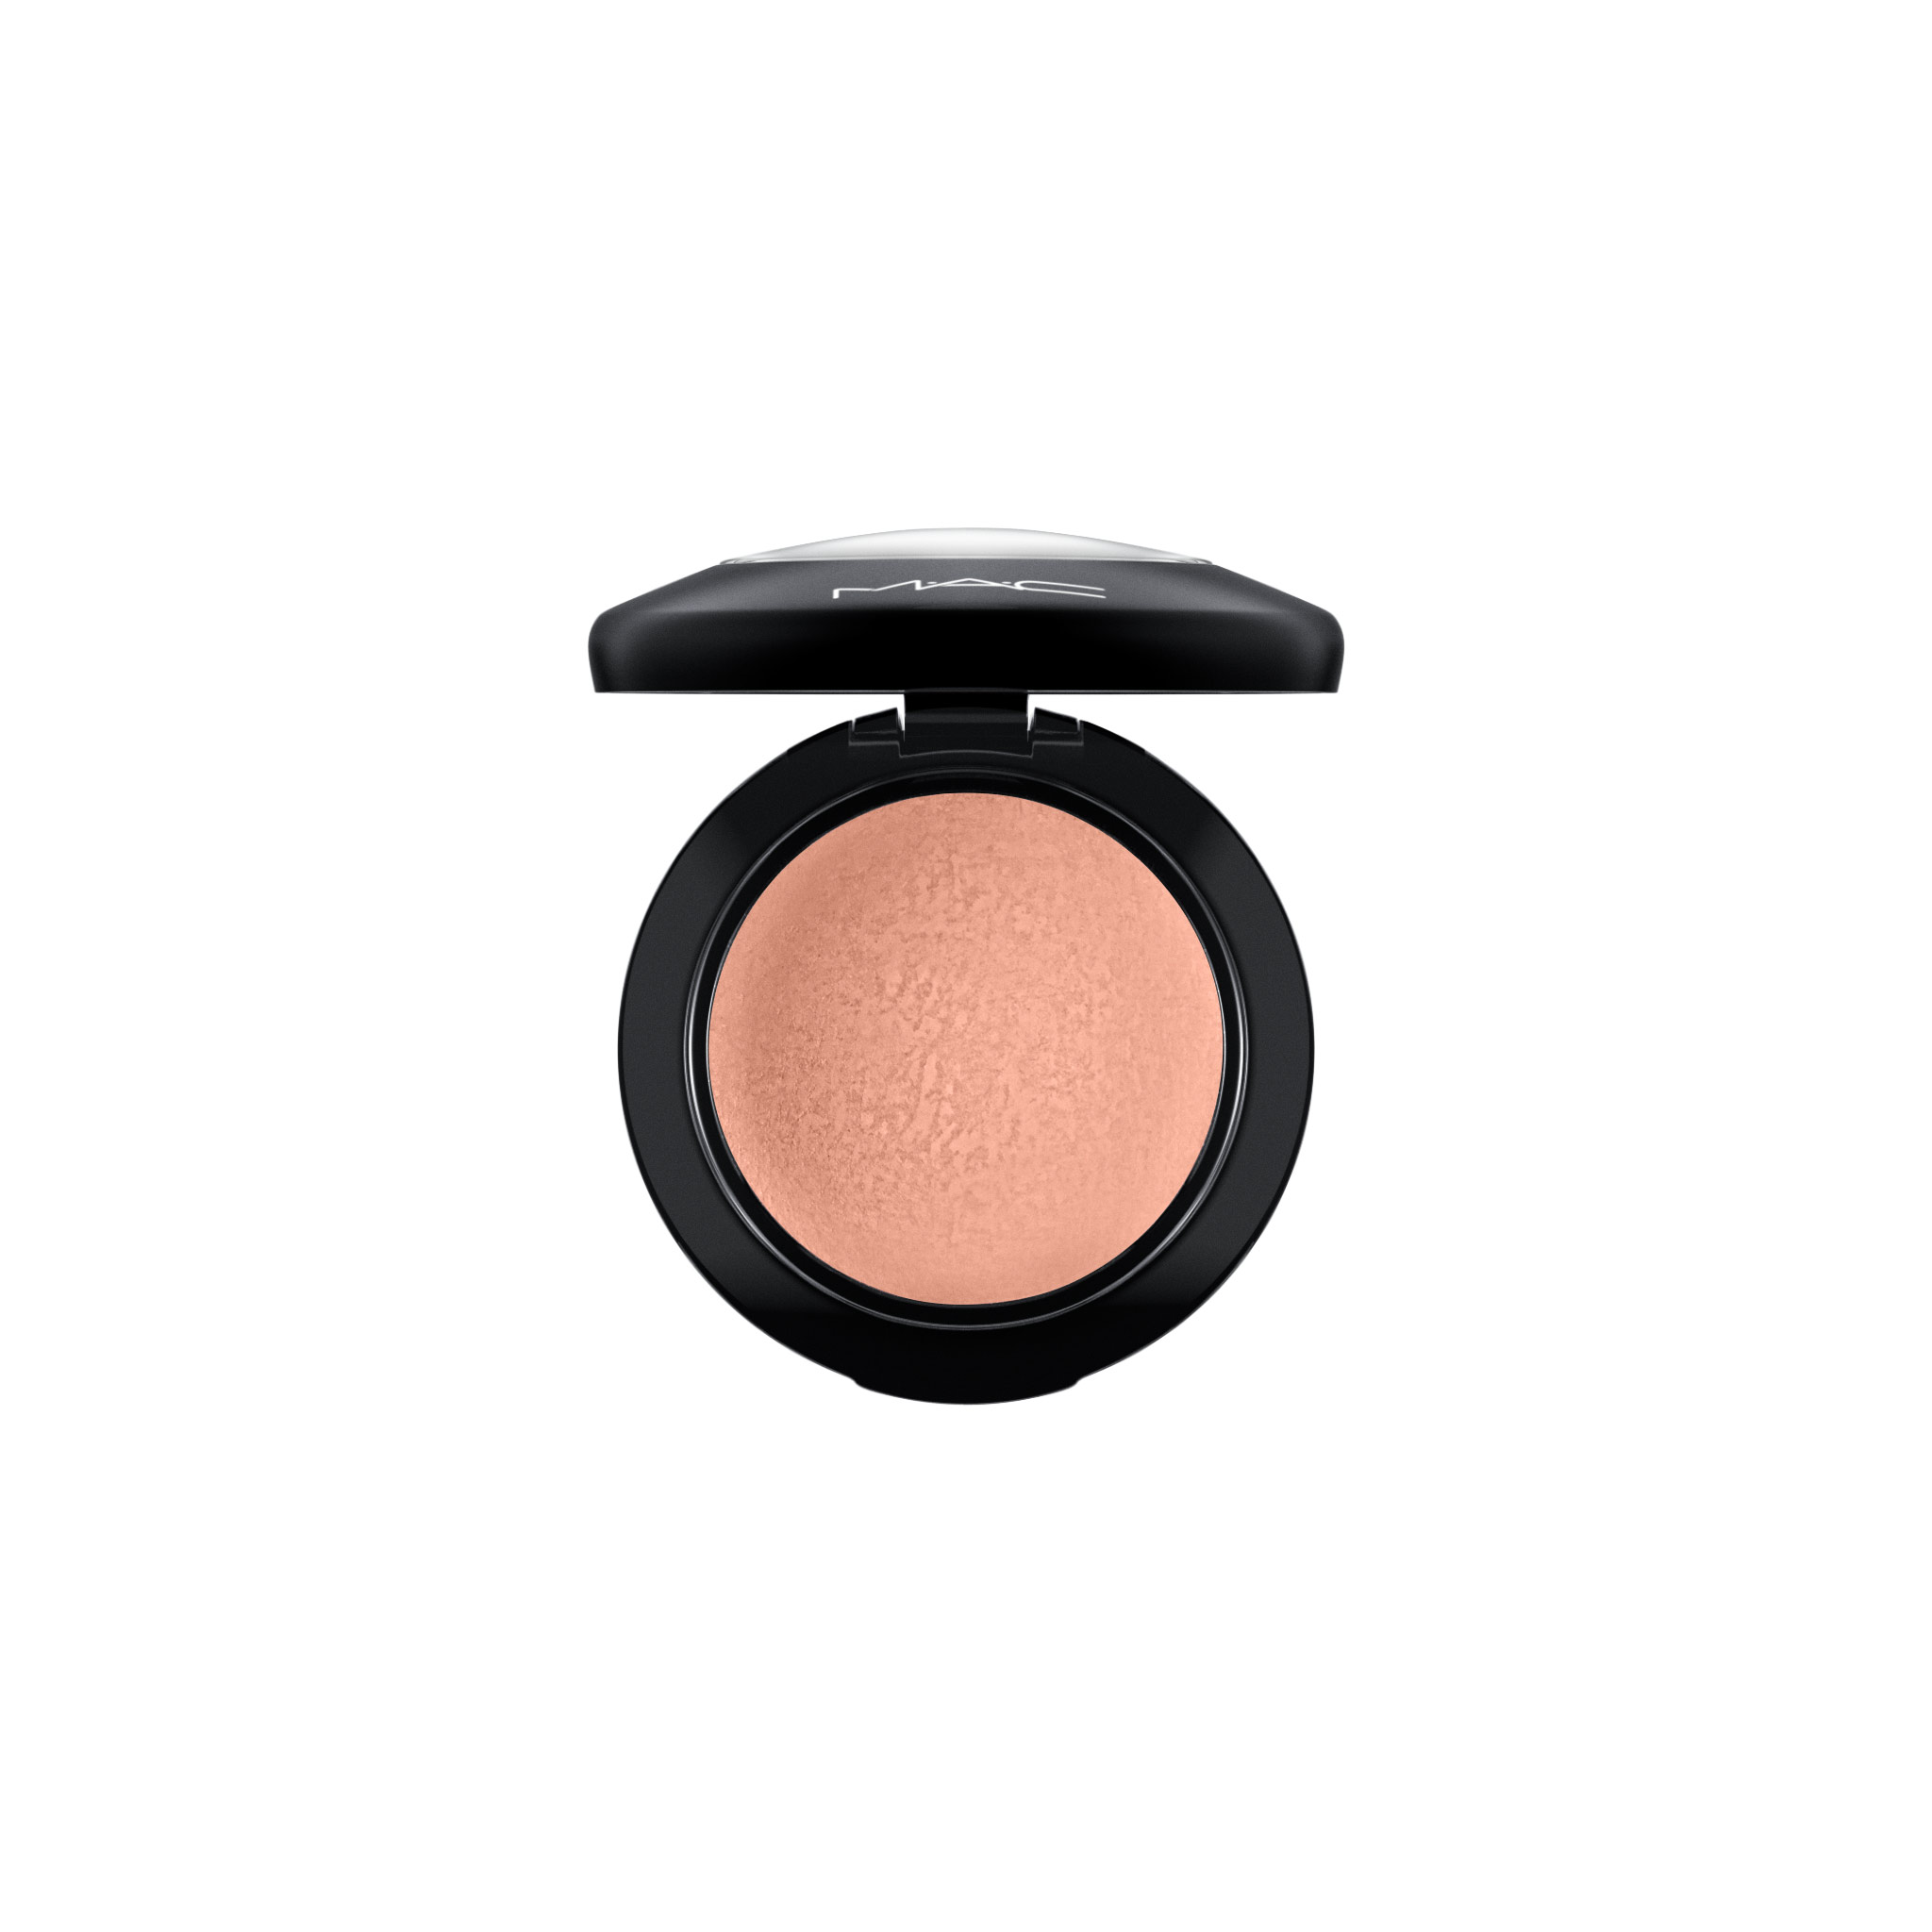 An image of MAC Mineralize Blush 3.5g Group 2 - HUMOUR ME